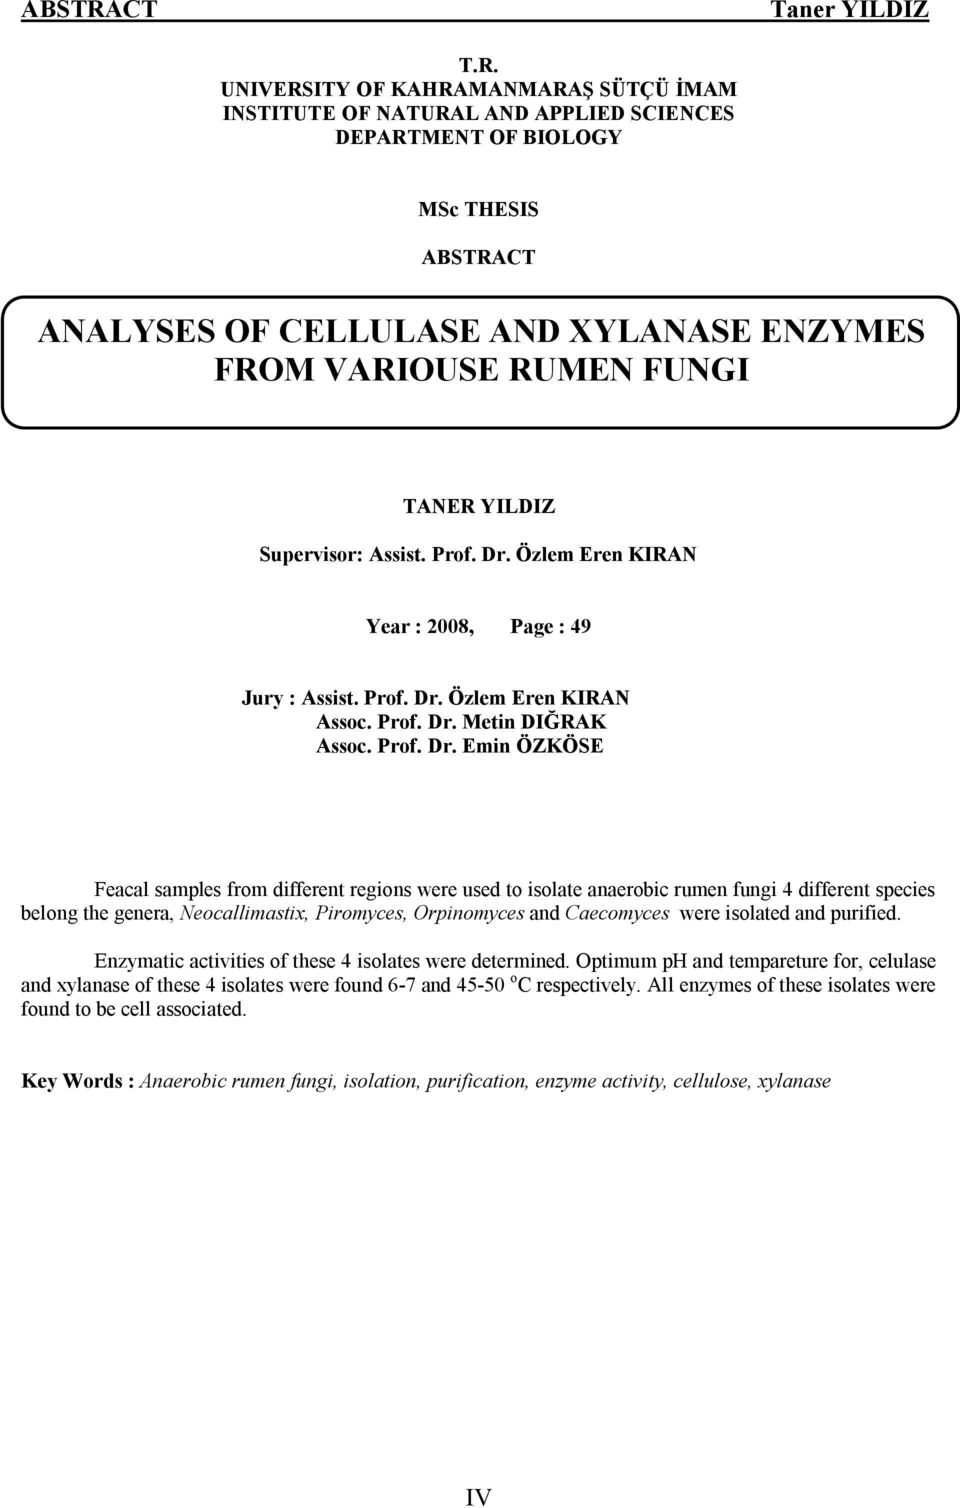 UNIVERSITY OF KAHRAMANMARAŞ SÜTÇÜ İMAM INSTITUTE OF NATURAL AND APPLIED SCIENCES DEPARTMENT OF BIOLOGY MSc THESIS CT ANALYSES OF CELLULASE AND XYLANASE ENZYMES FROM VARIOUSE RUMEN FUNGI TANER YILDIZ